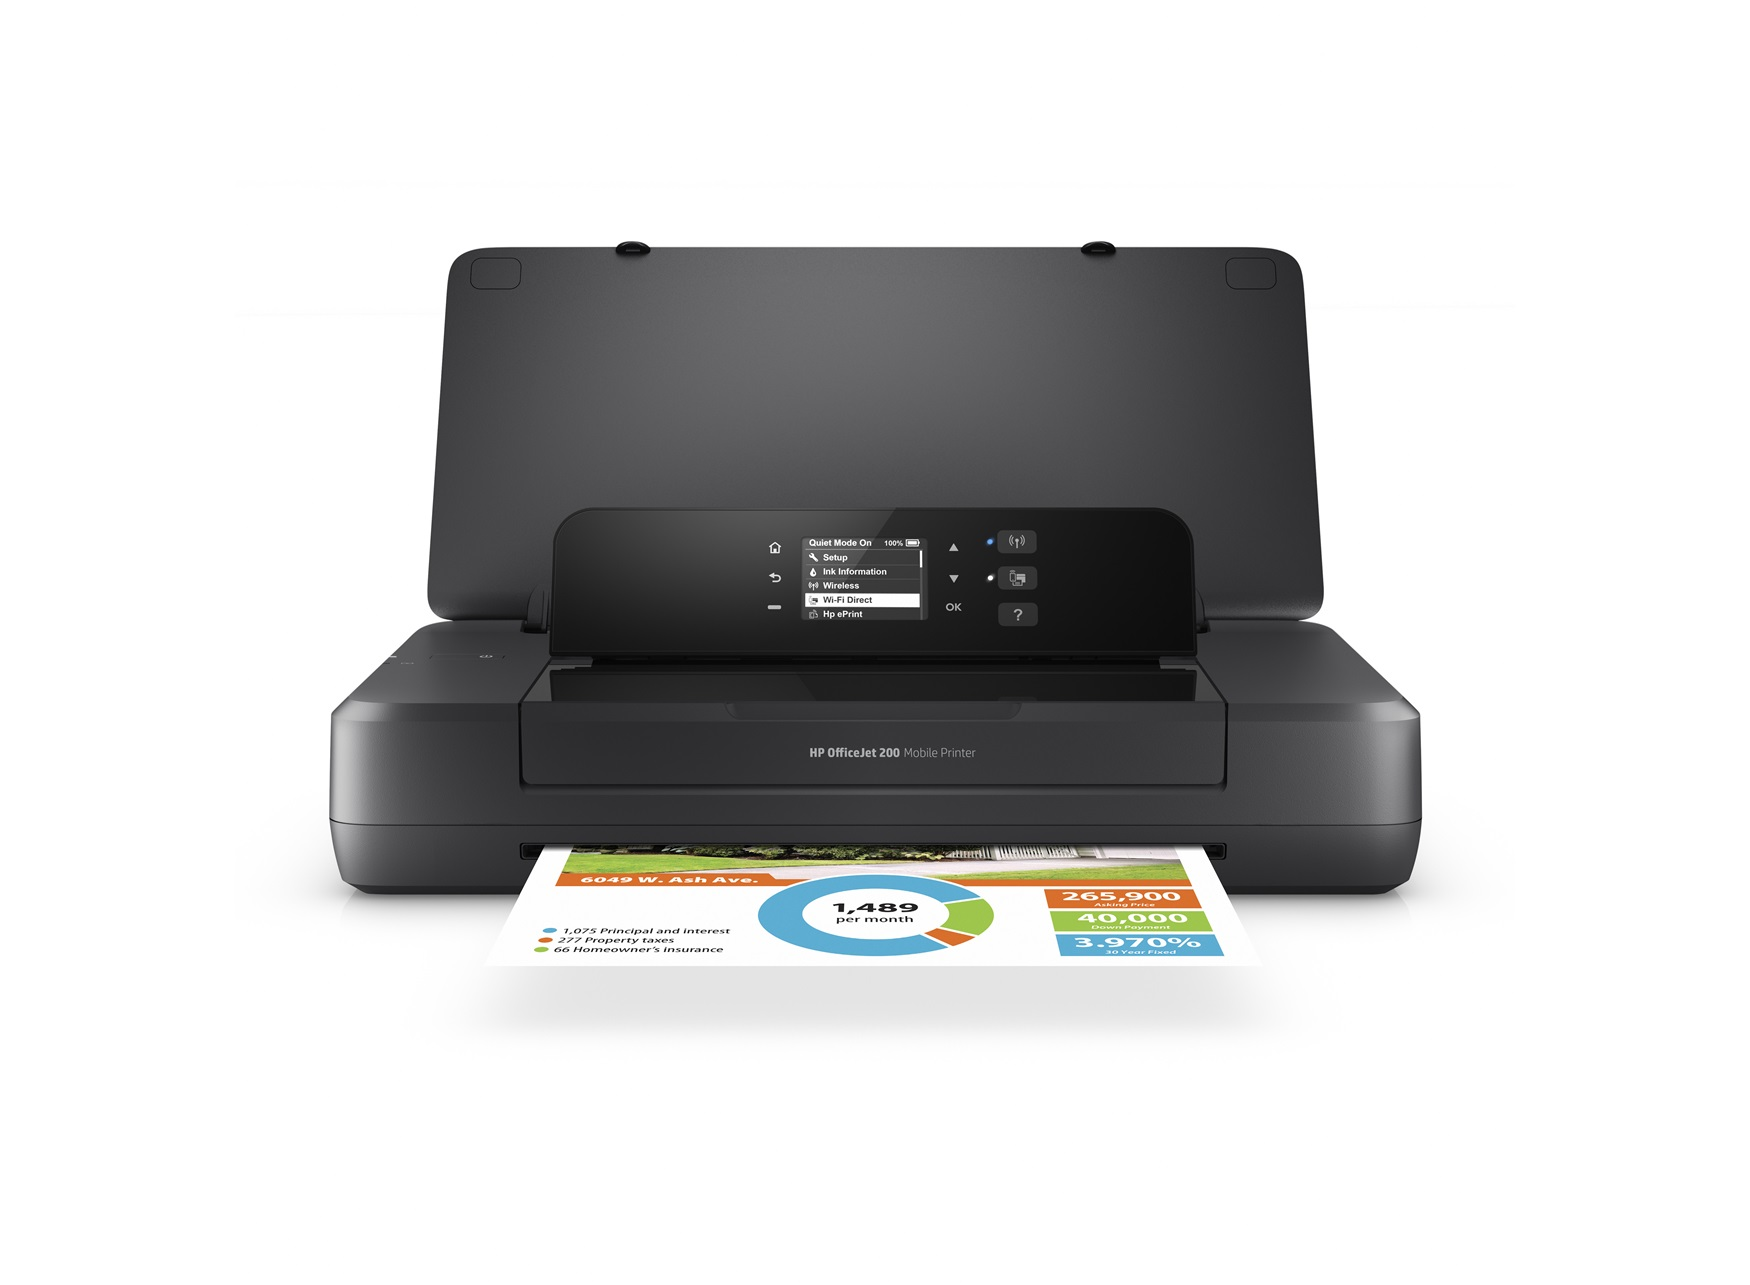 HP Officejet 200 Imprimante portable